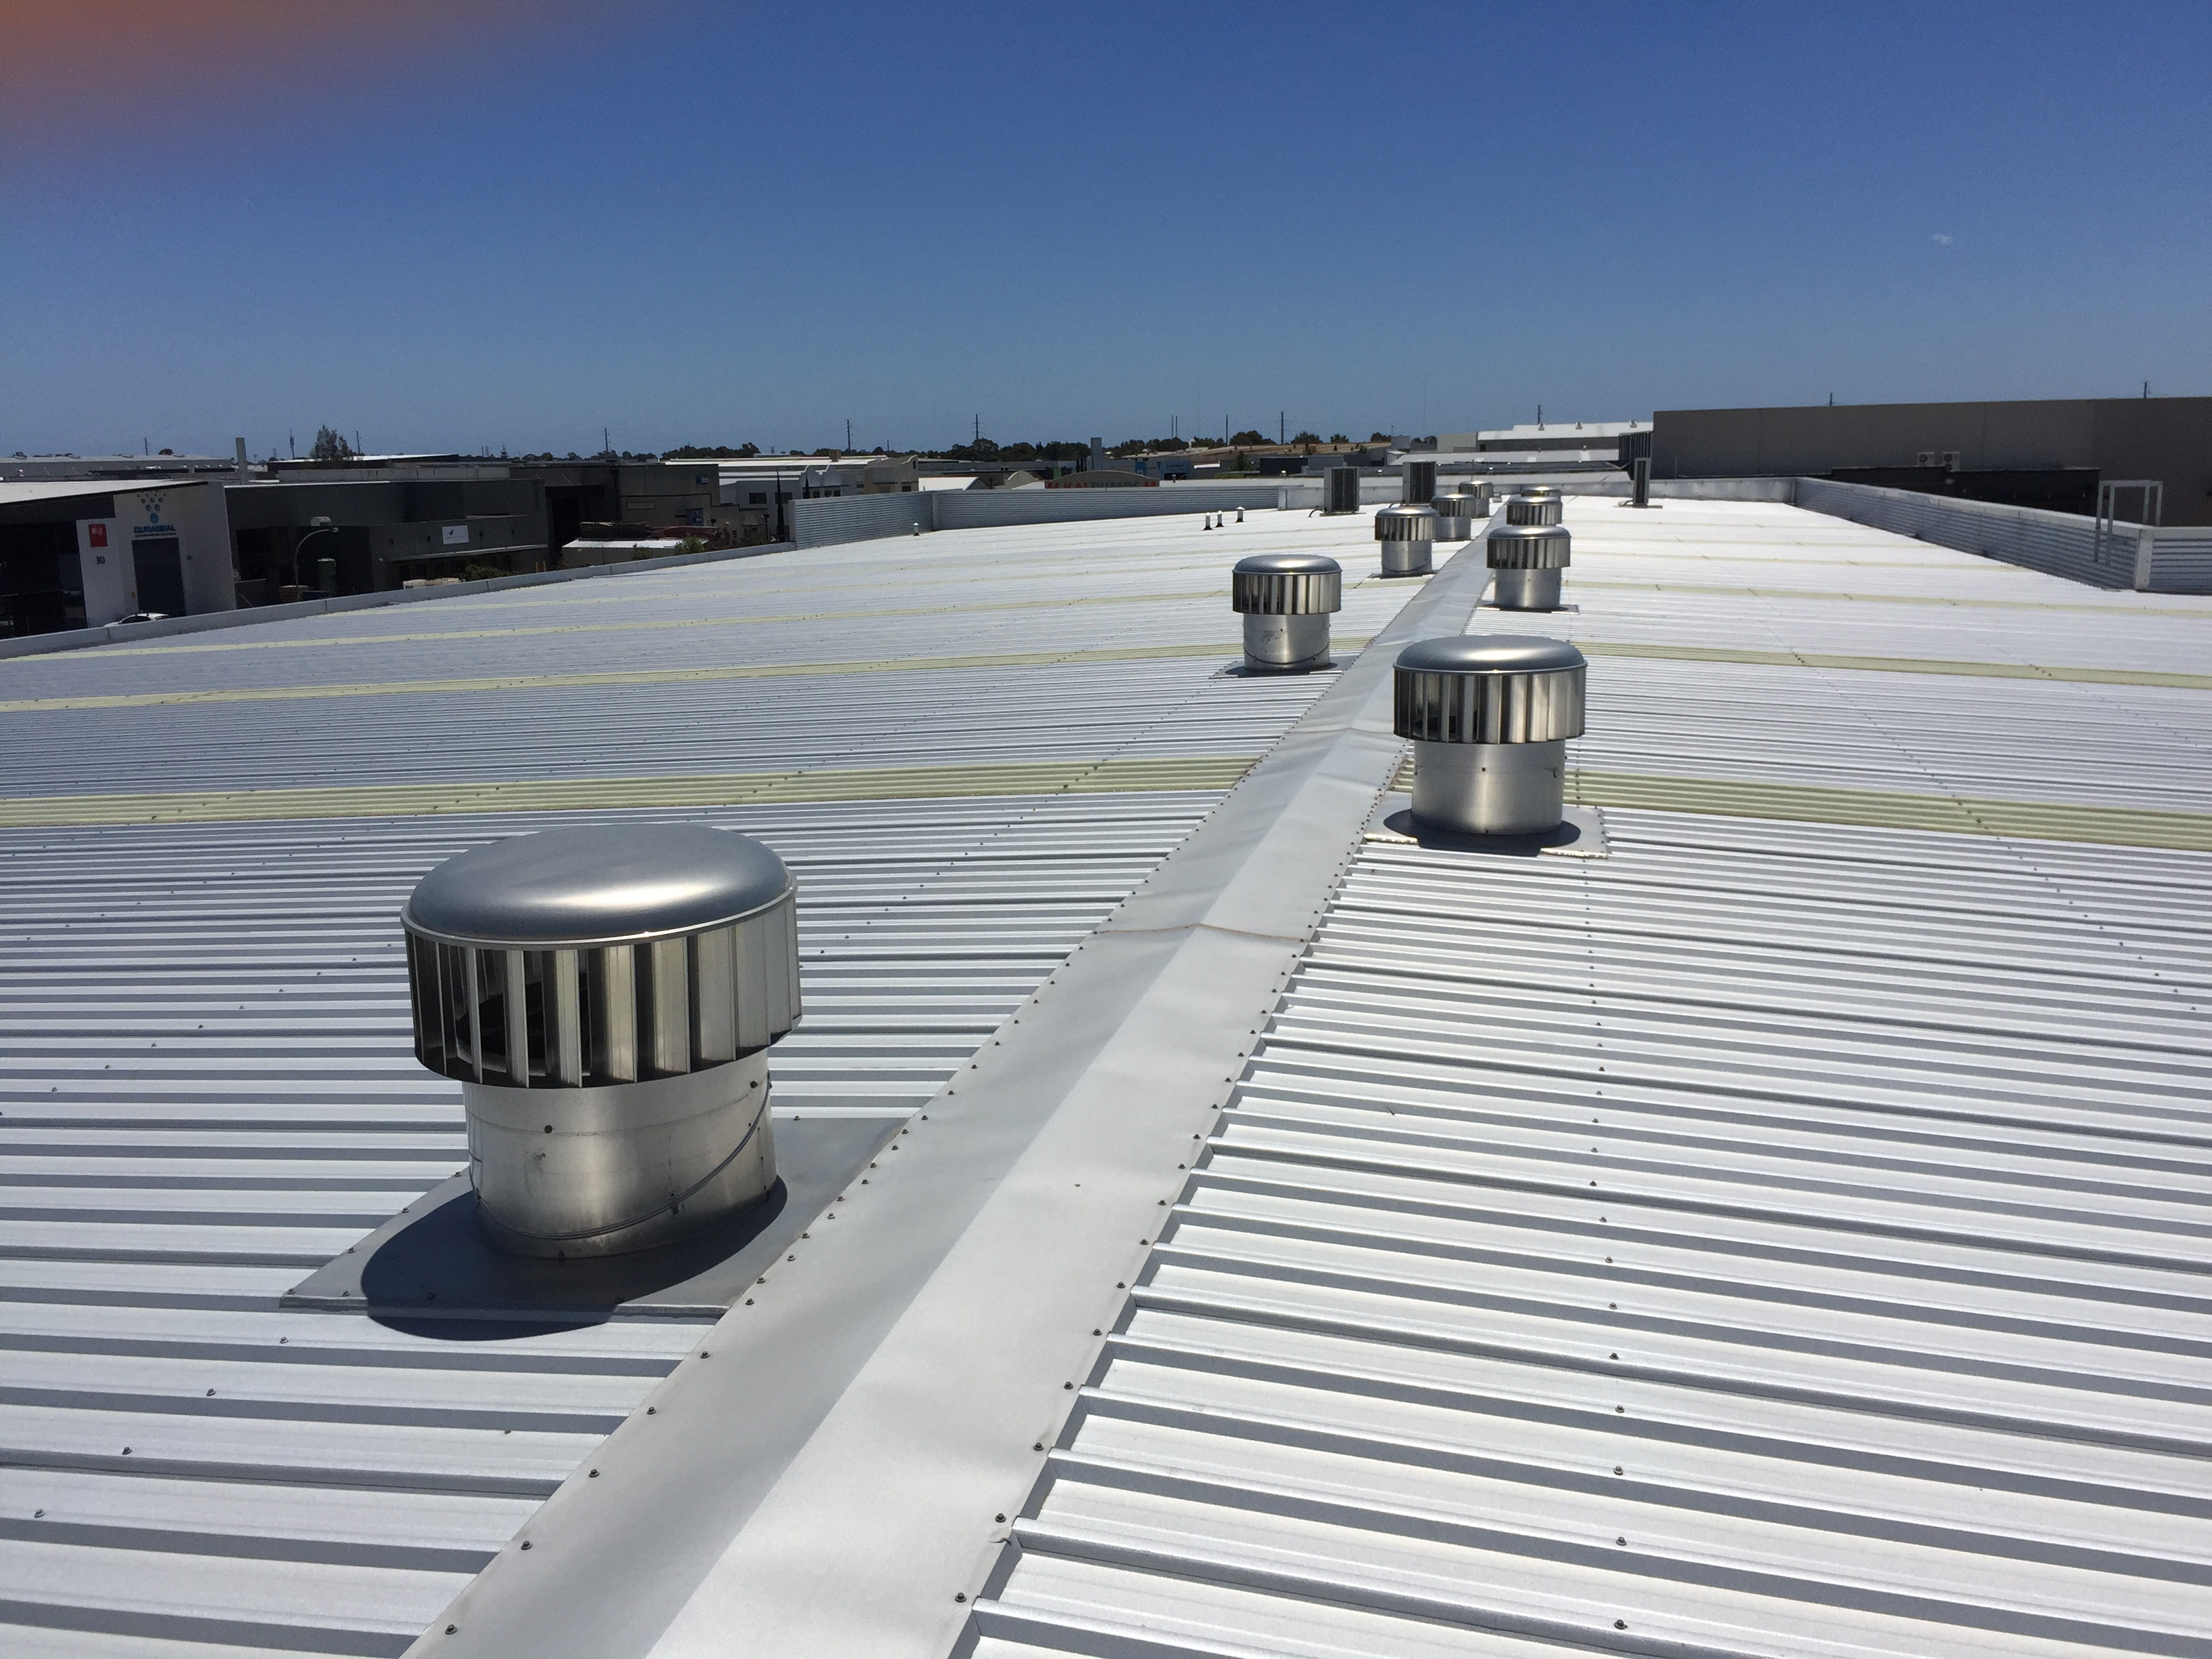 Industrial Roof Vents : Whirlybirds and roofing vents wa gallery of